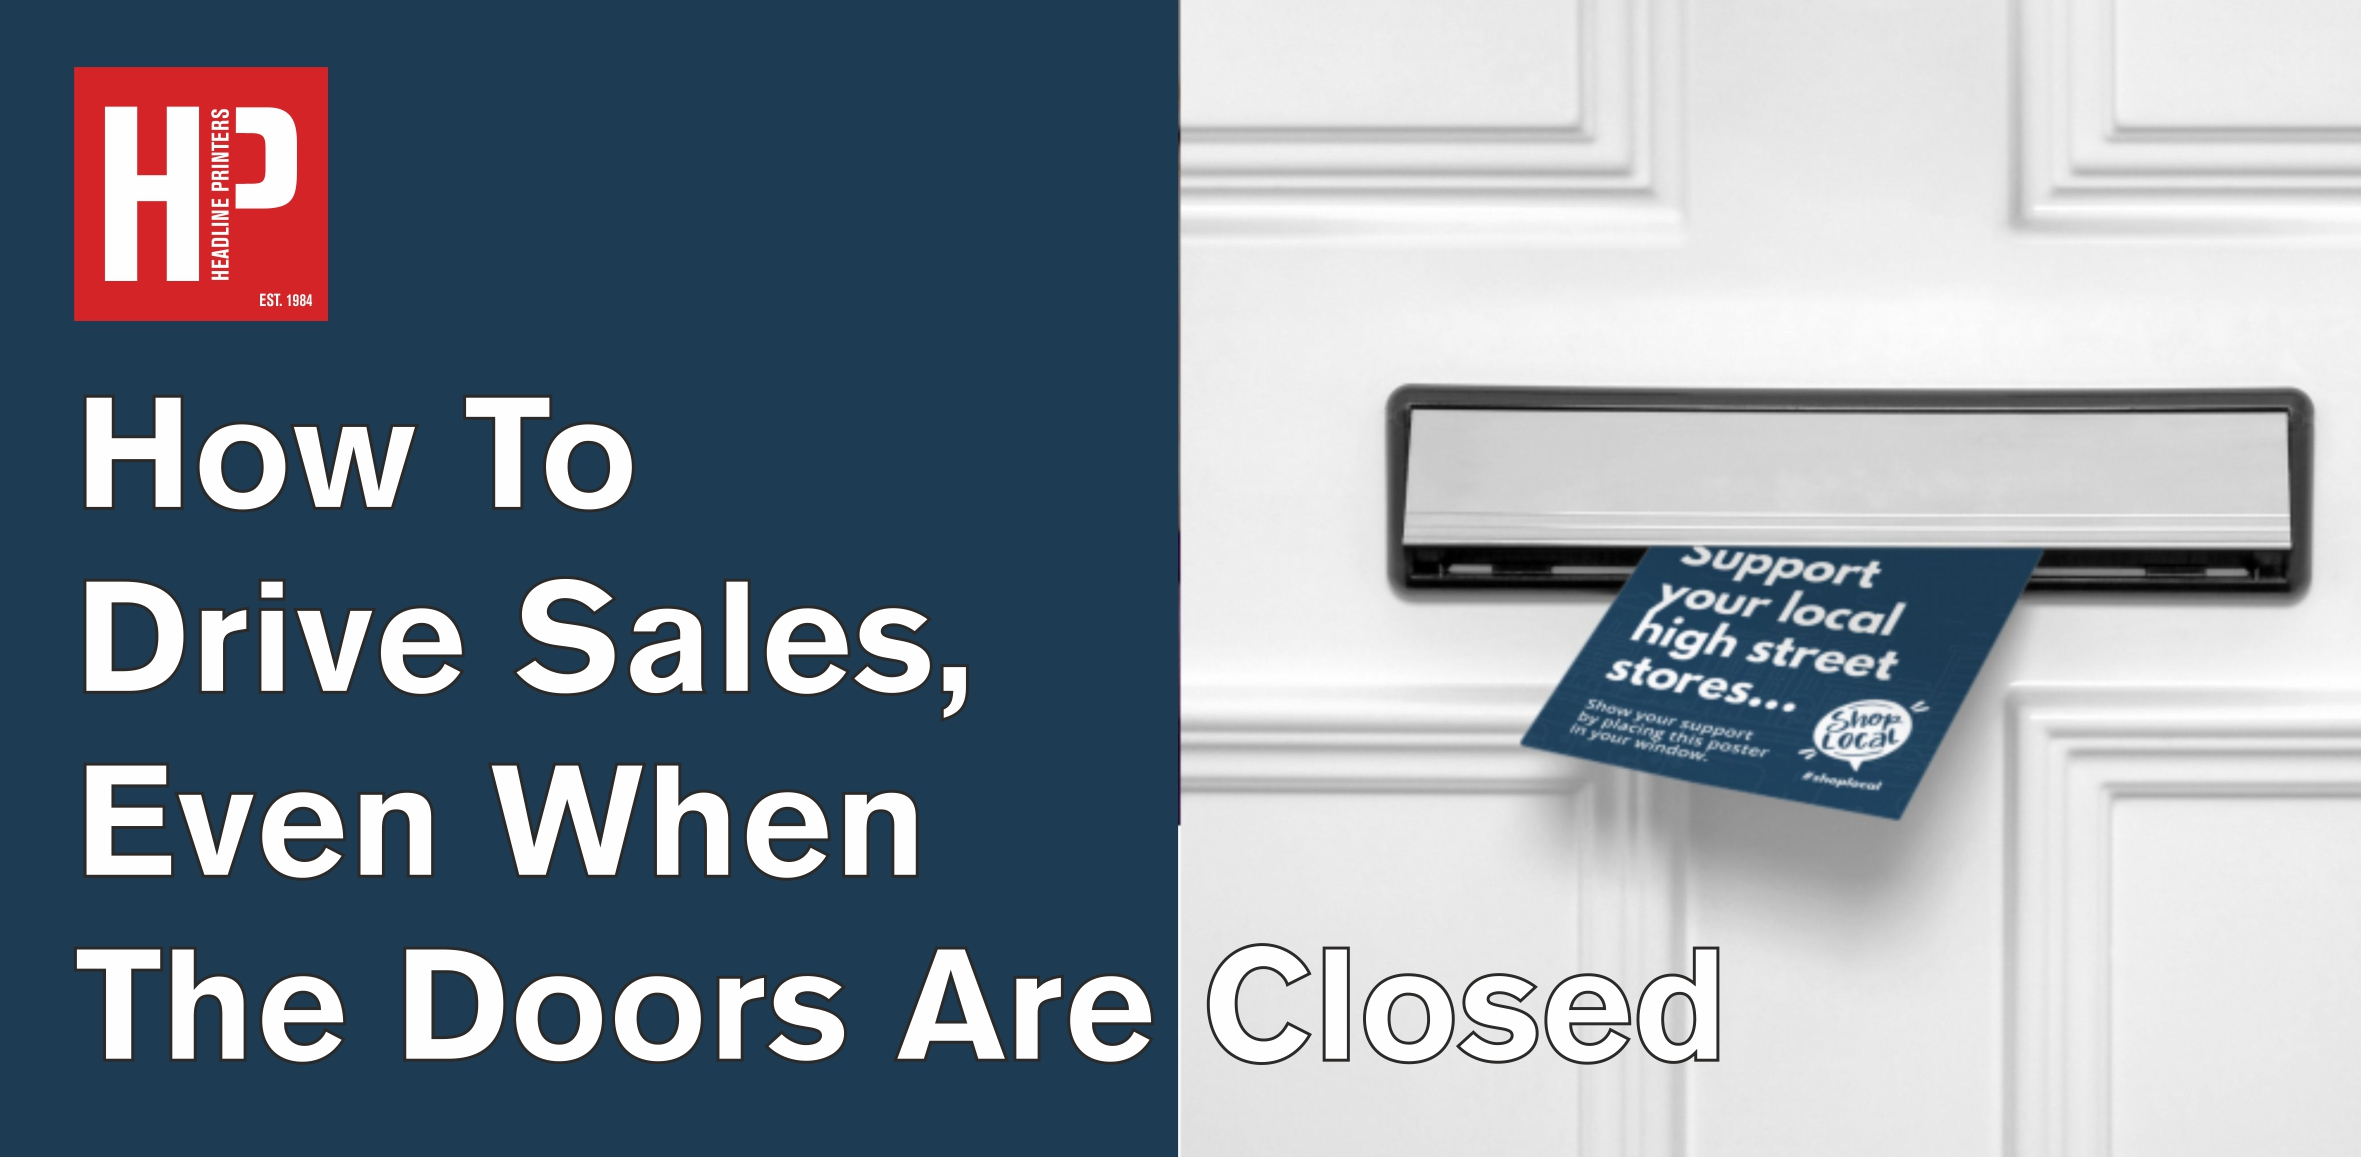 How To Drive Sales, Even When The Doors Are Closed